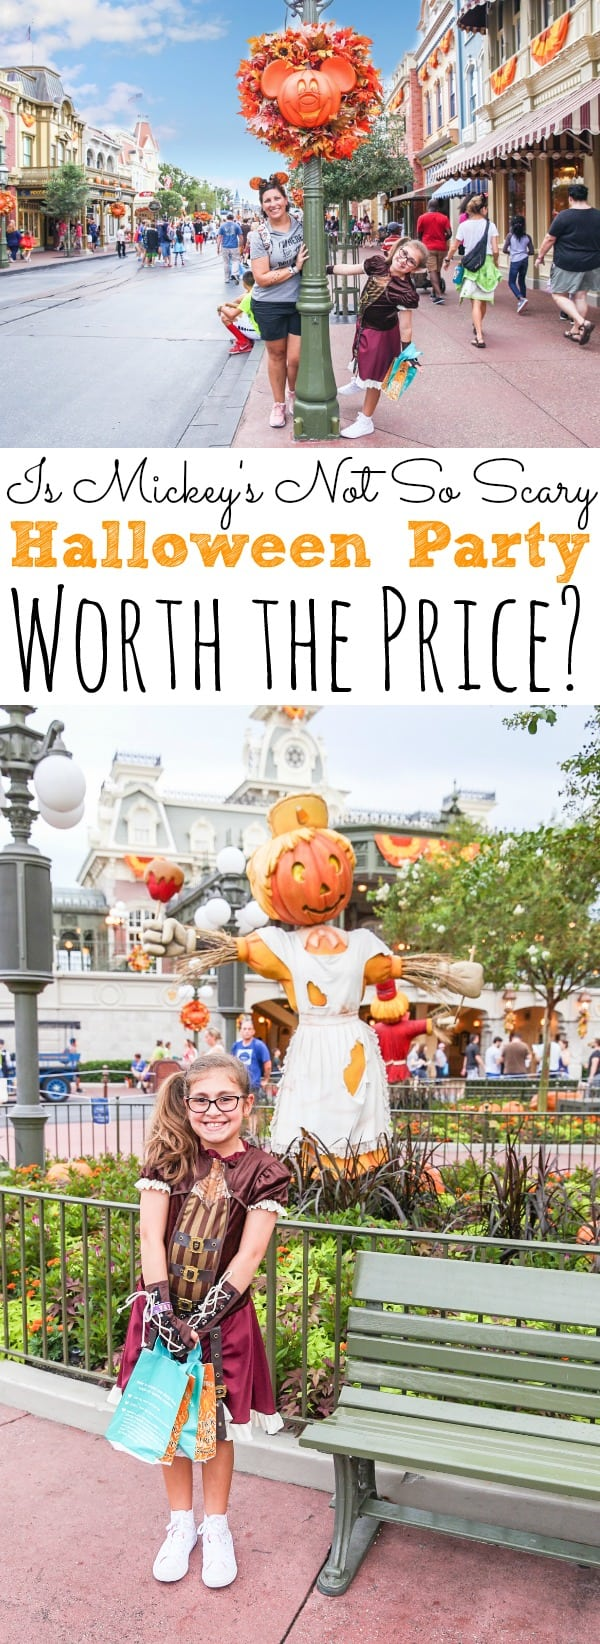 Have you ever thought about visiting Walt Disney World for Mickey's Not So Scary Halloween Party? Do need to know if it's worth the price? Well, I'm sharing with you all that is included in your admission for Mickey's Not So Scary Halloween Party and if it's worth the price for your family! - simplytodaylife.com #MNSSHP #NoSoScary #MickeysNotSoScaryHalloweenParty #HalloweenatDisney #WDW #WaltDisneyWorld #MagicKingdom #DisneyHalloween #HalloweenatDisney #Florida #Orlando #FamilyTravels #TravelingwithKids #Travels #Family #DisneyTips #DisneyTravels #Disney